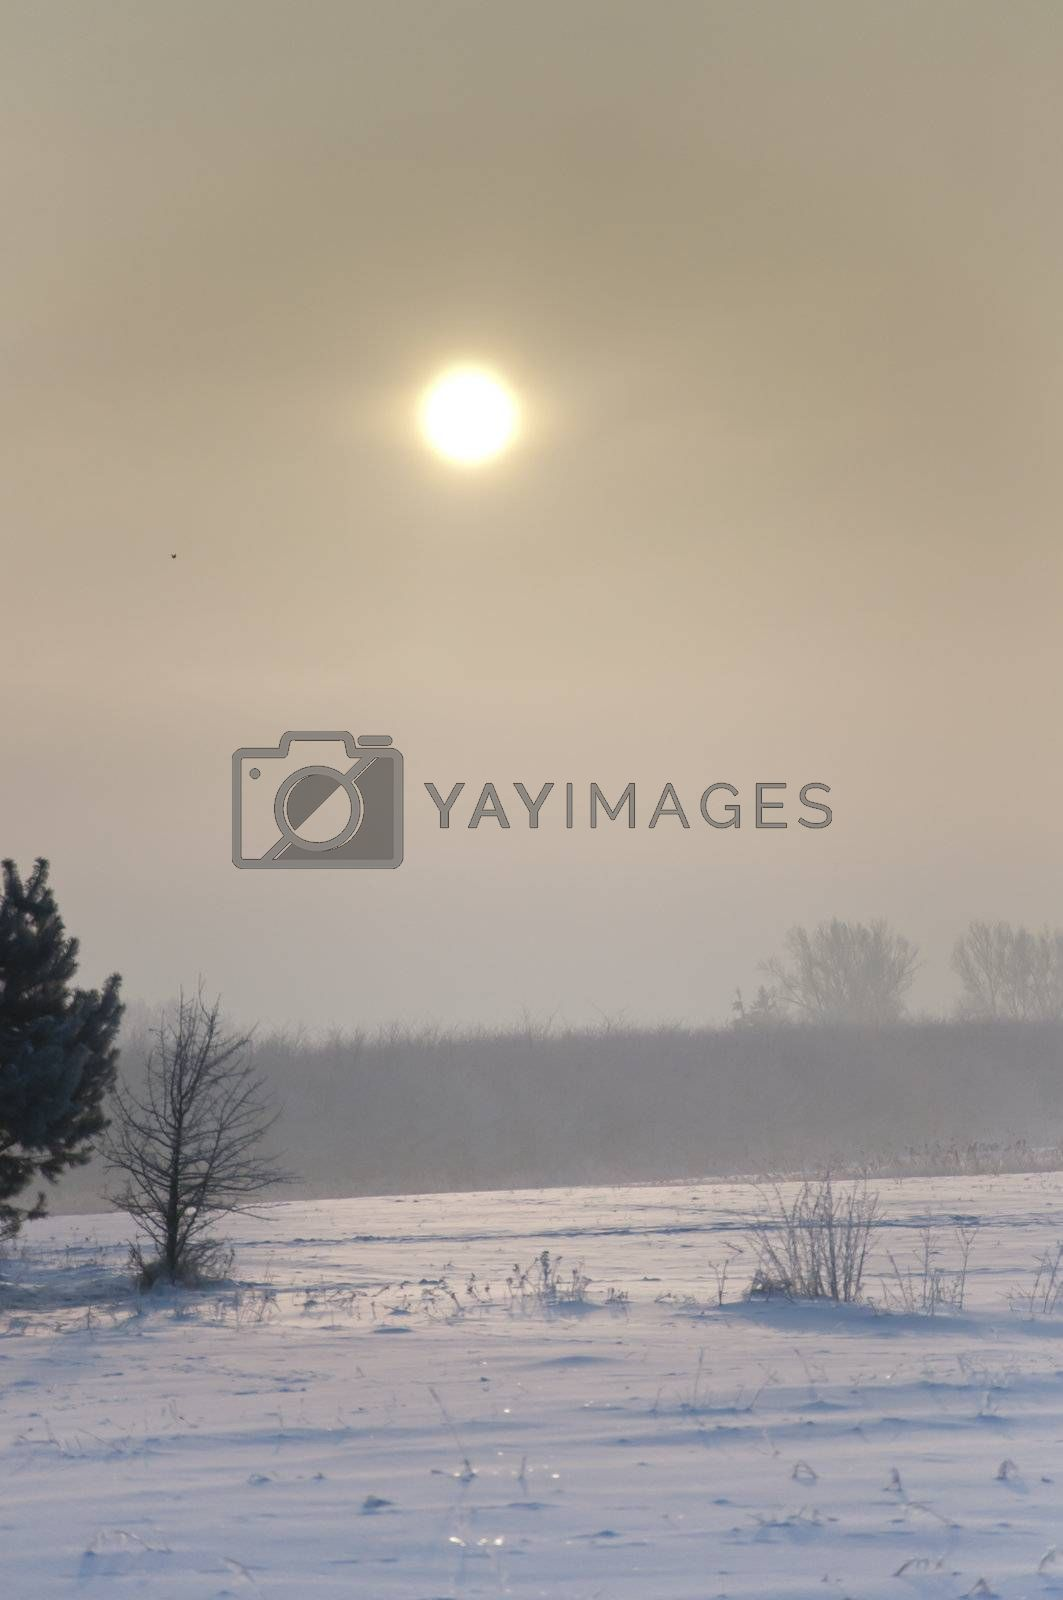 an image of winter scenery